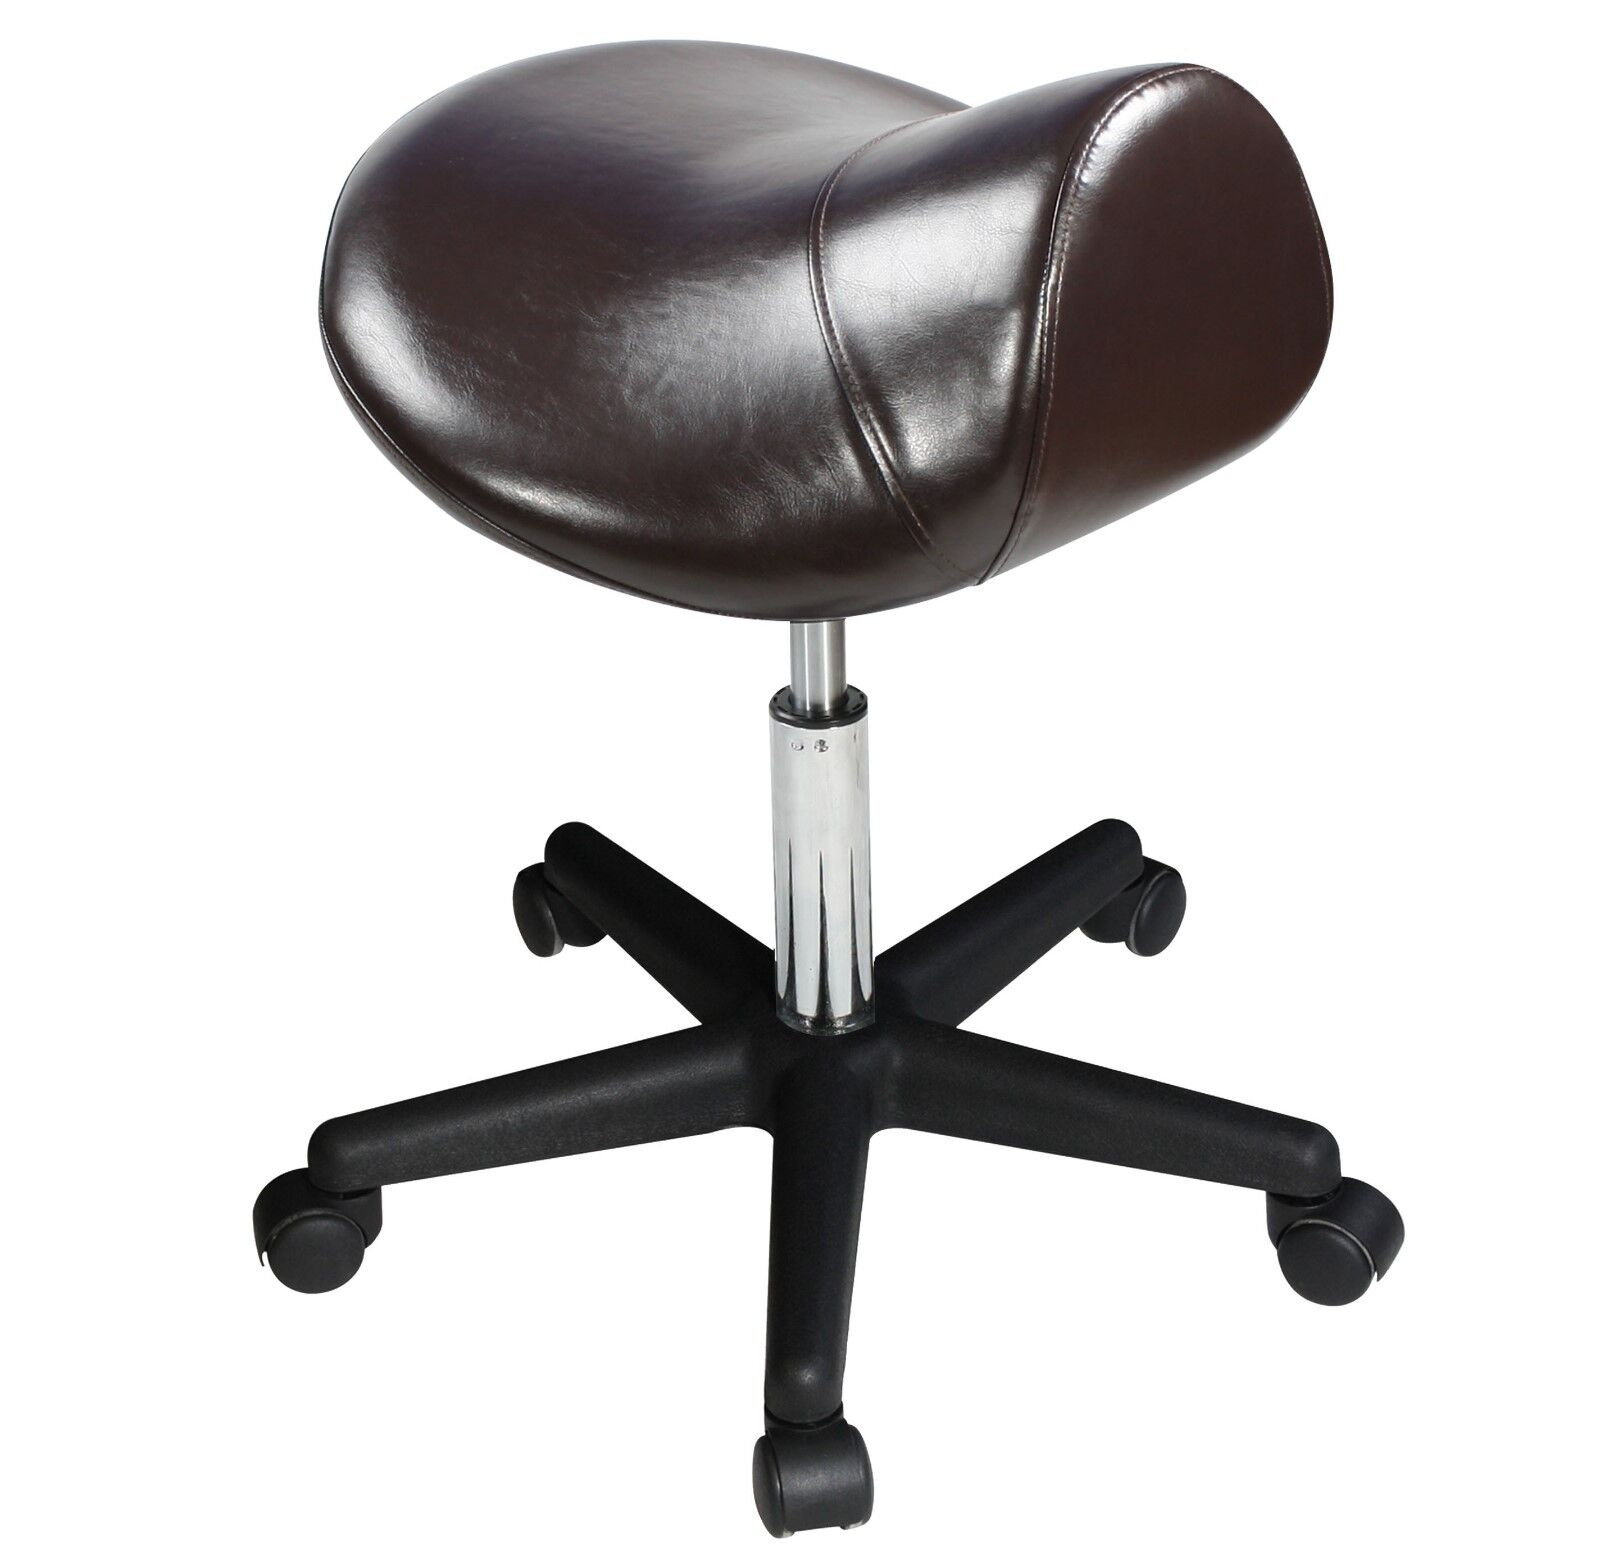 Saddle Office Chair Master Saddle Stool Hydraulic Ergonomic Office Massage Rolling Chair Black